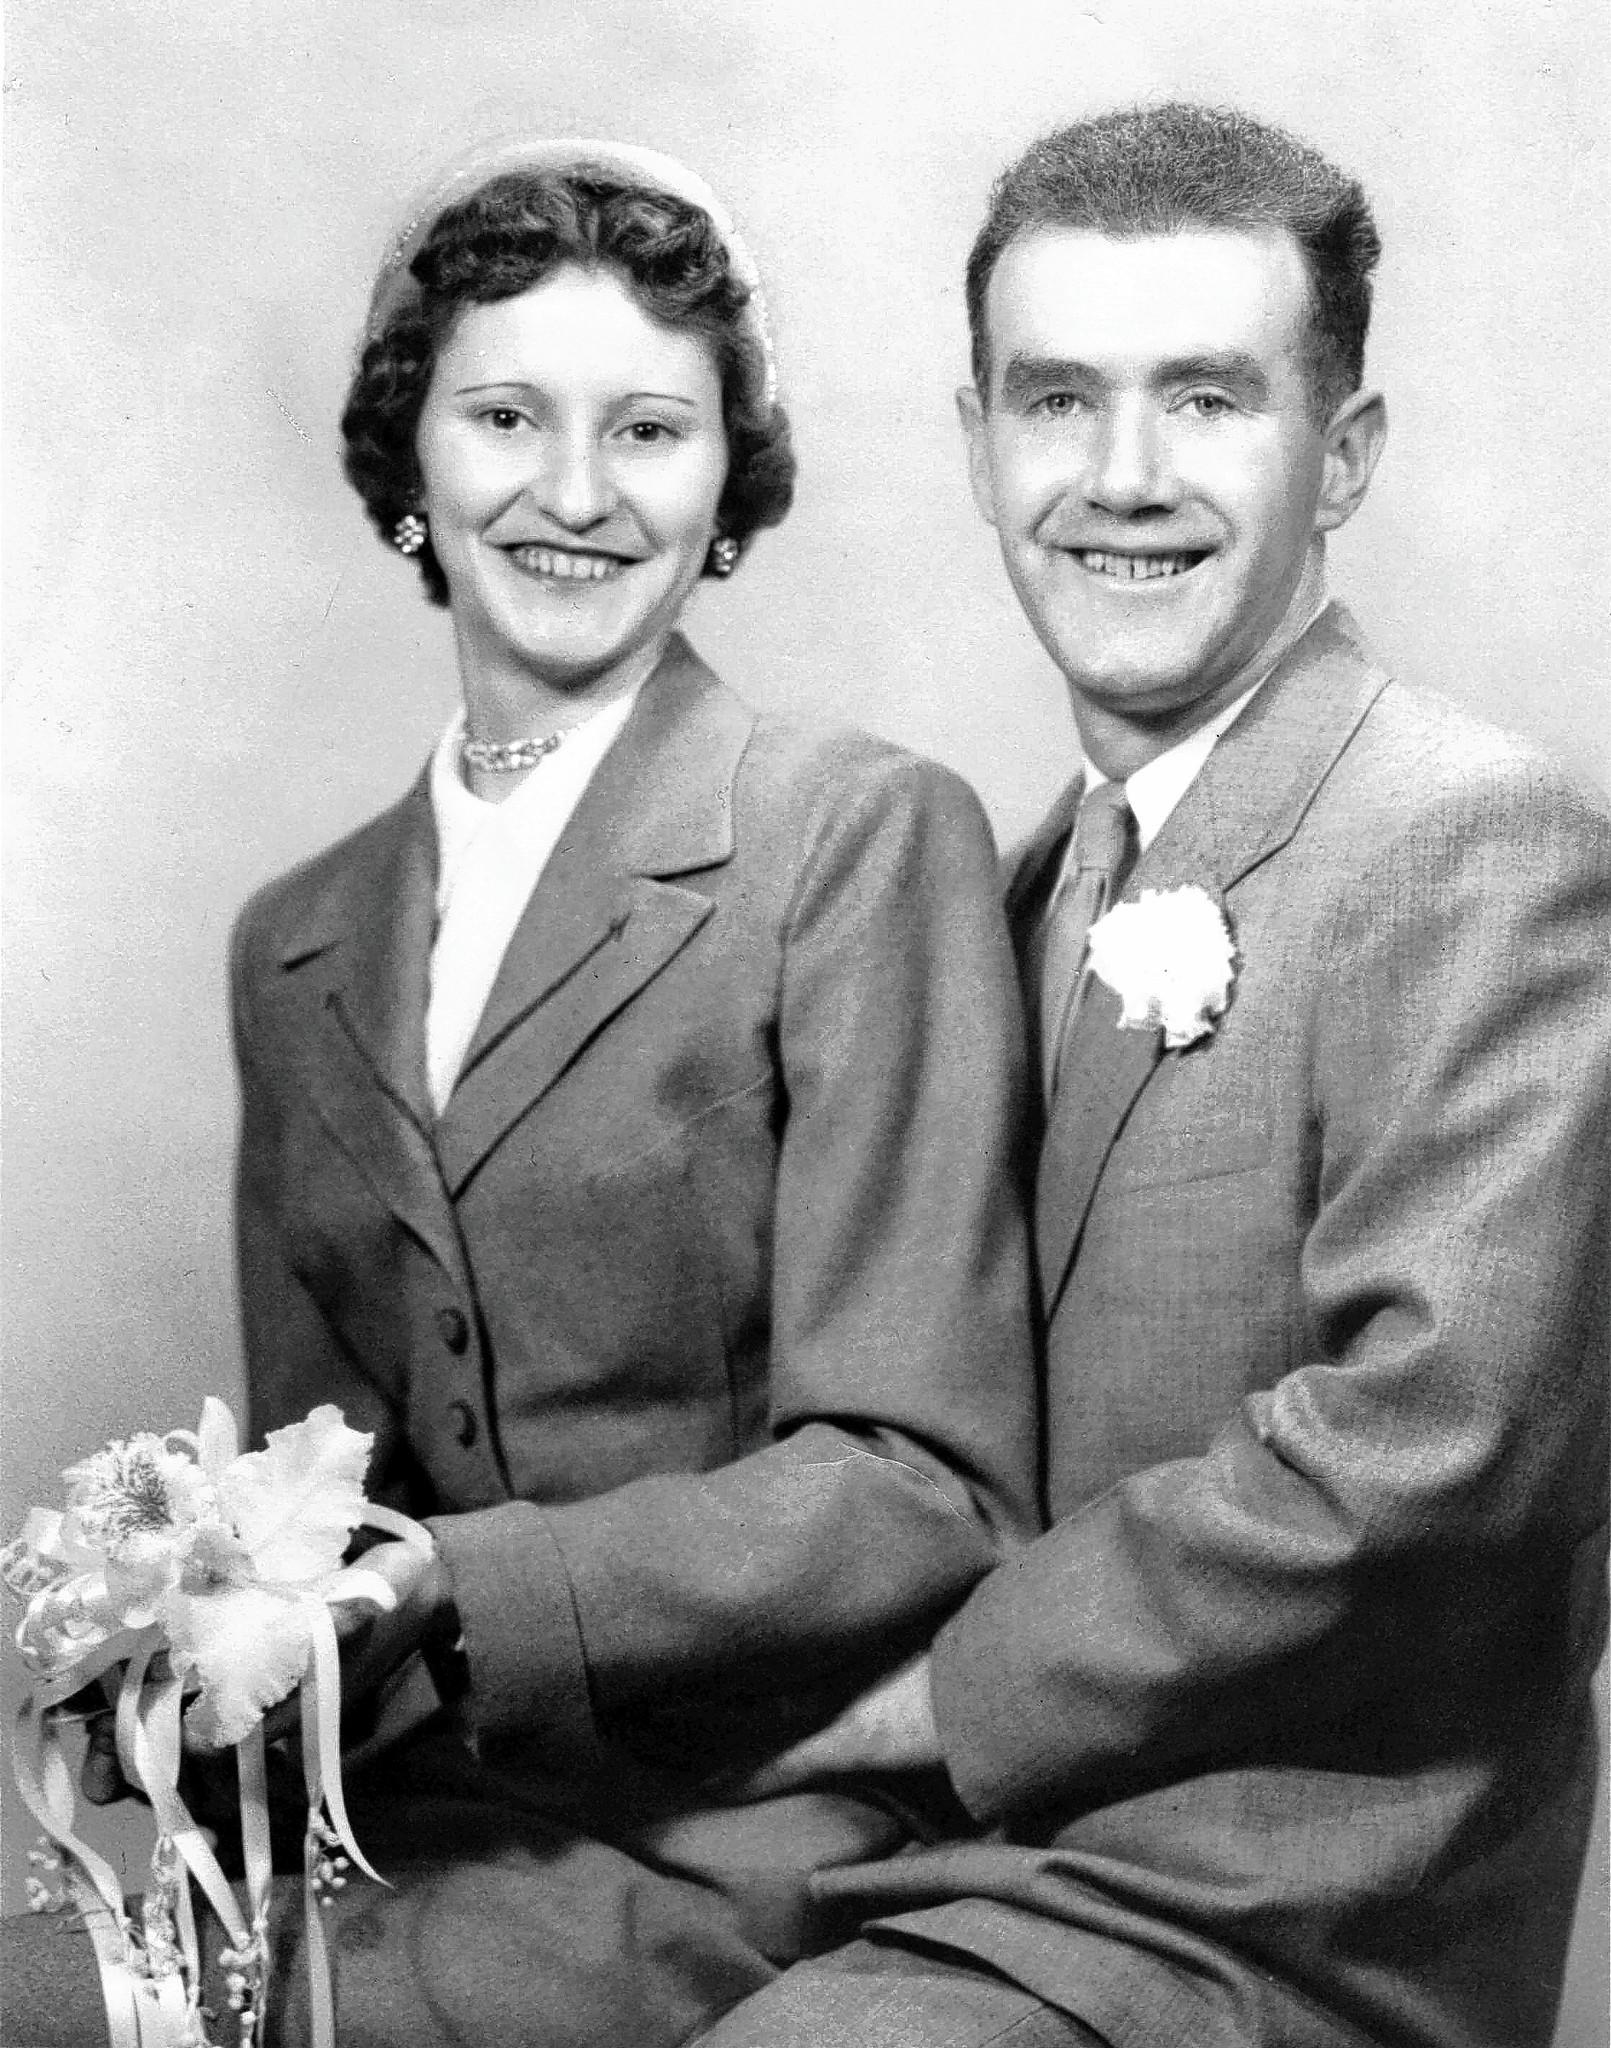 Armand Pouliot and his wife Constance Pouliot after getting married. Armand Pouliot was a World War II veteran who received two Purple Hearts, along with other decorations. He was part of the Company C, 150th Engineer Combat Battalion.